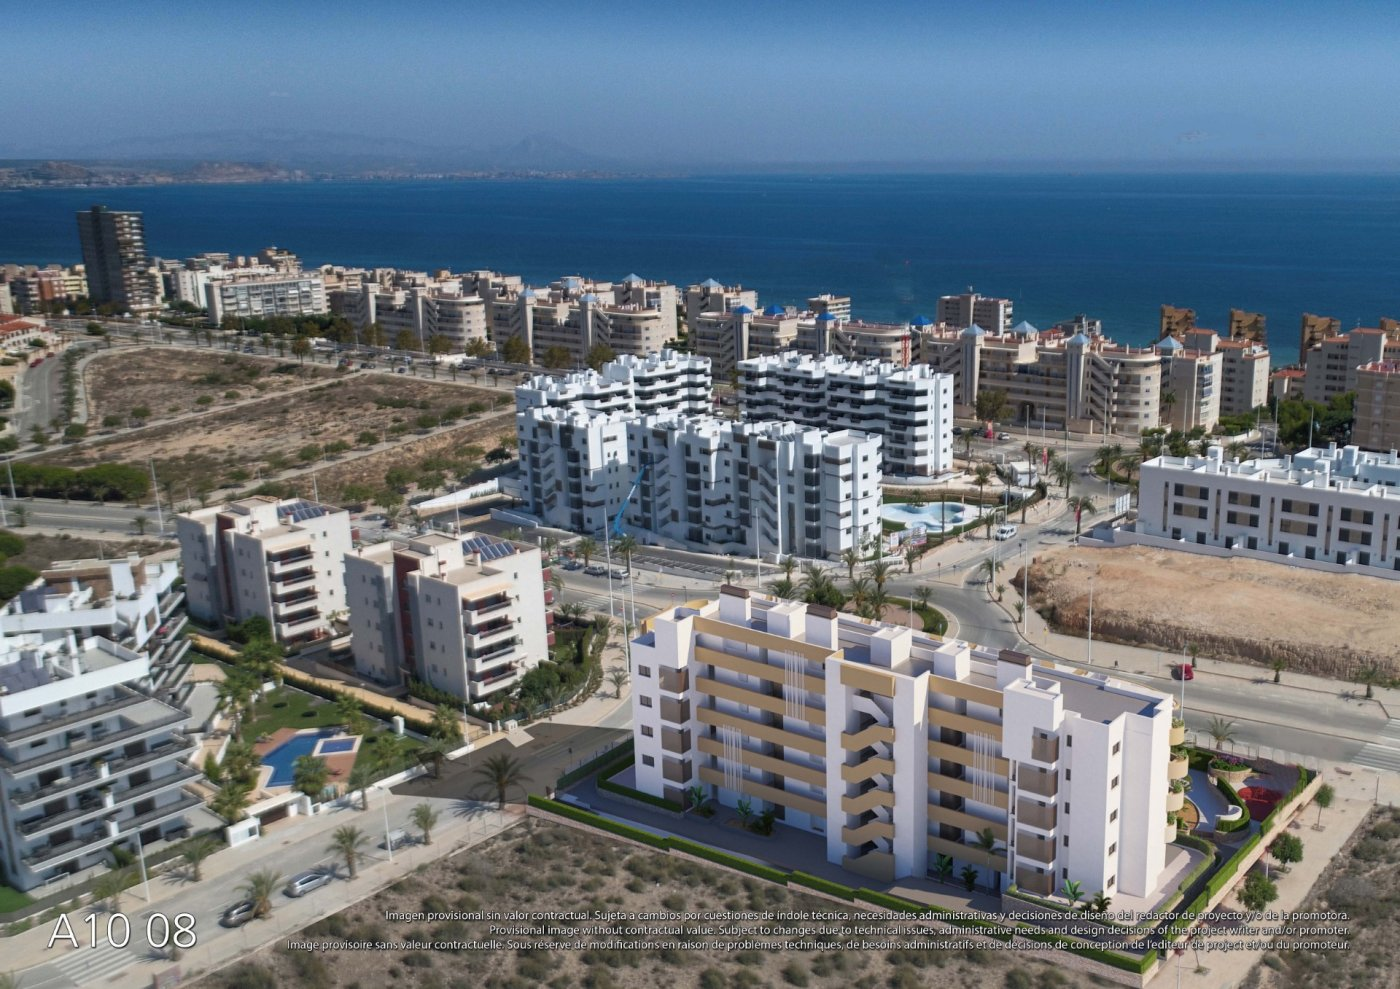 For Sale-Arenales del sol-BM731